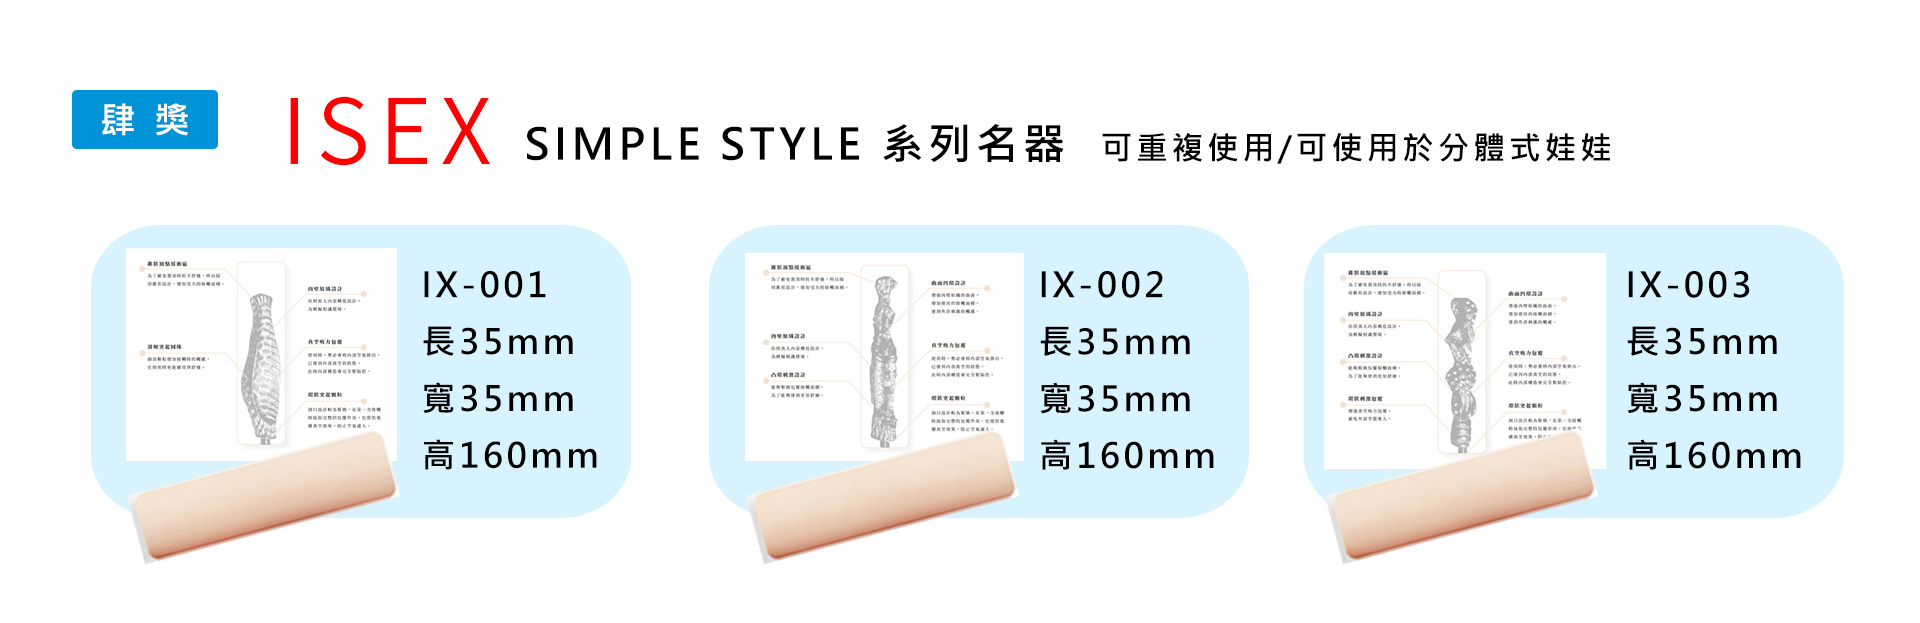 SIMPLE STYLE全系列